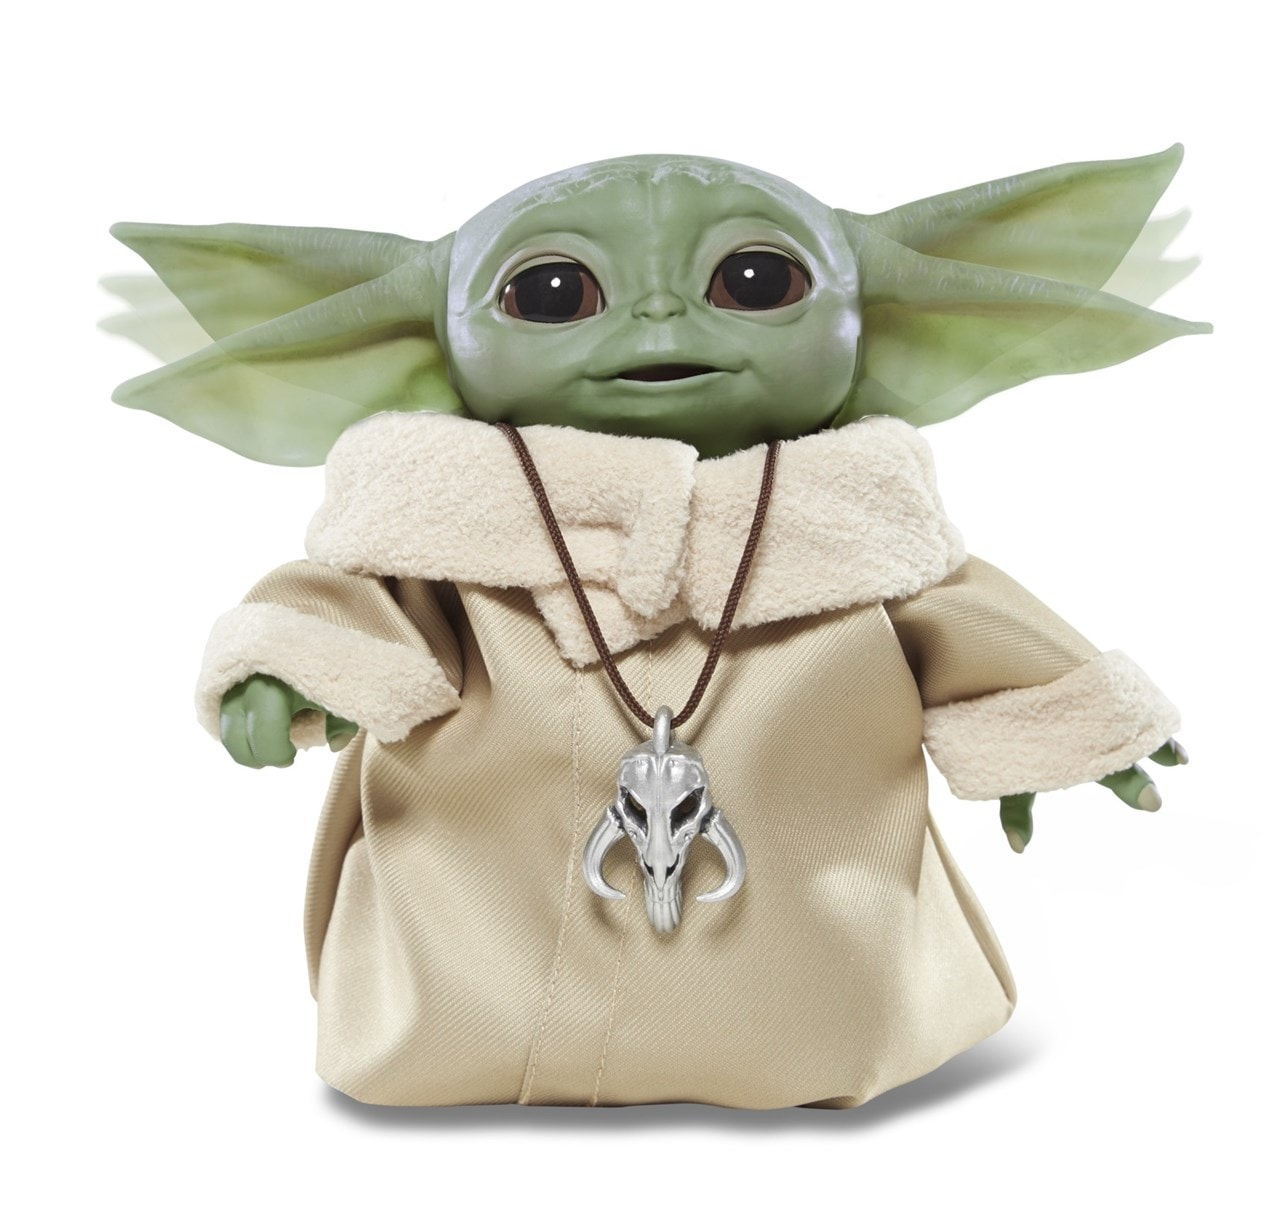 Star Wars: The Child (Baby Yoda) Animatronic Toy - 1